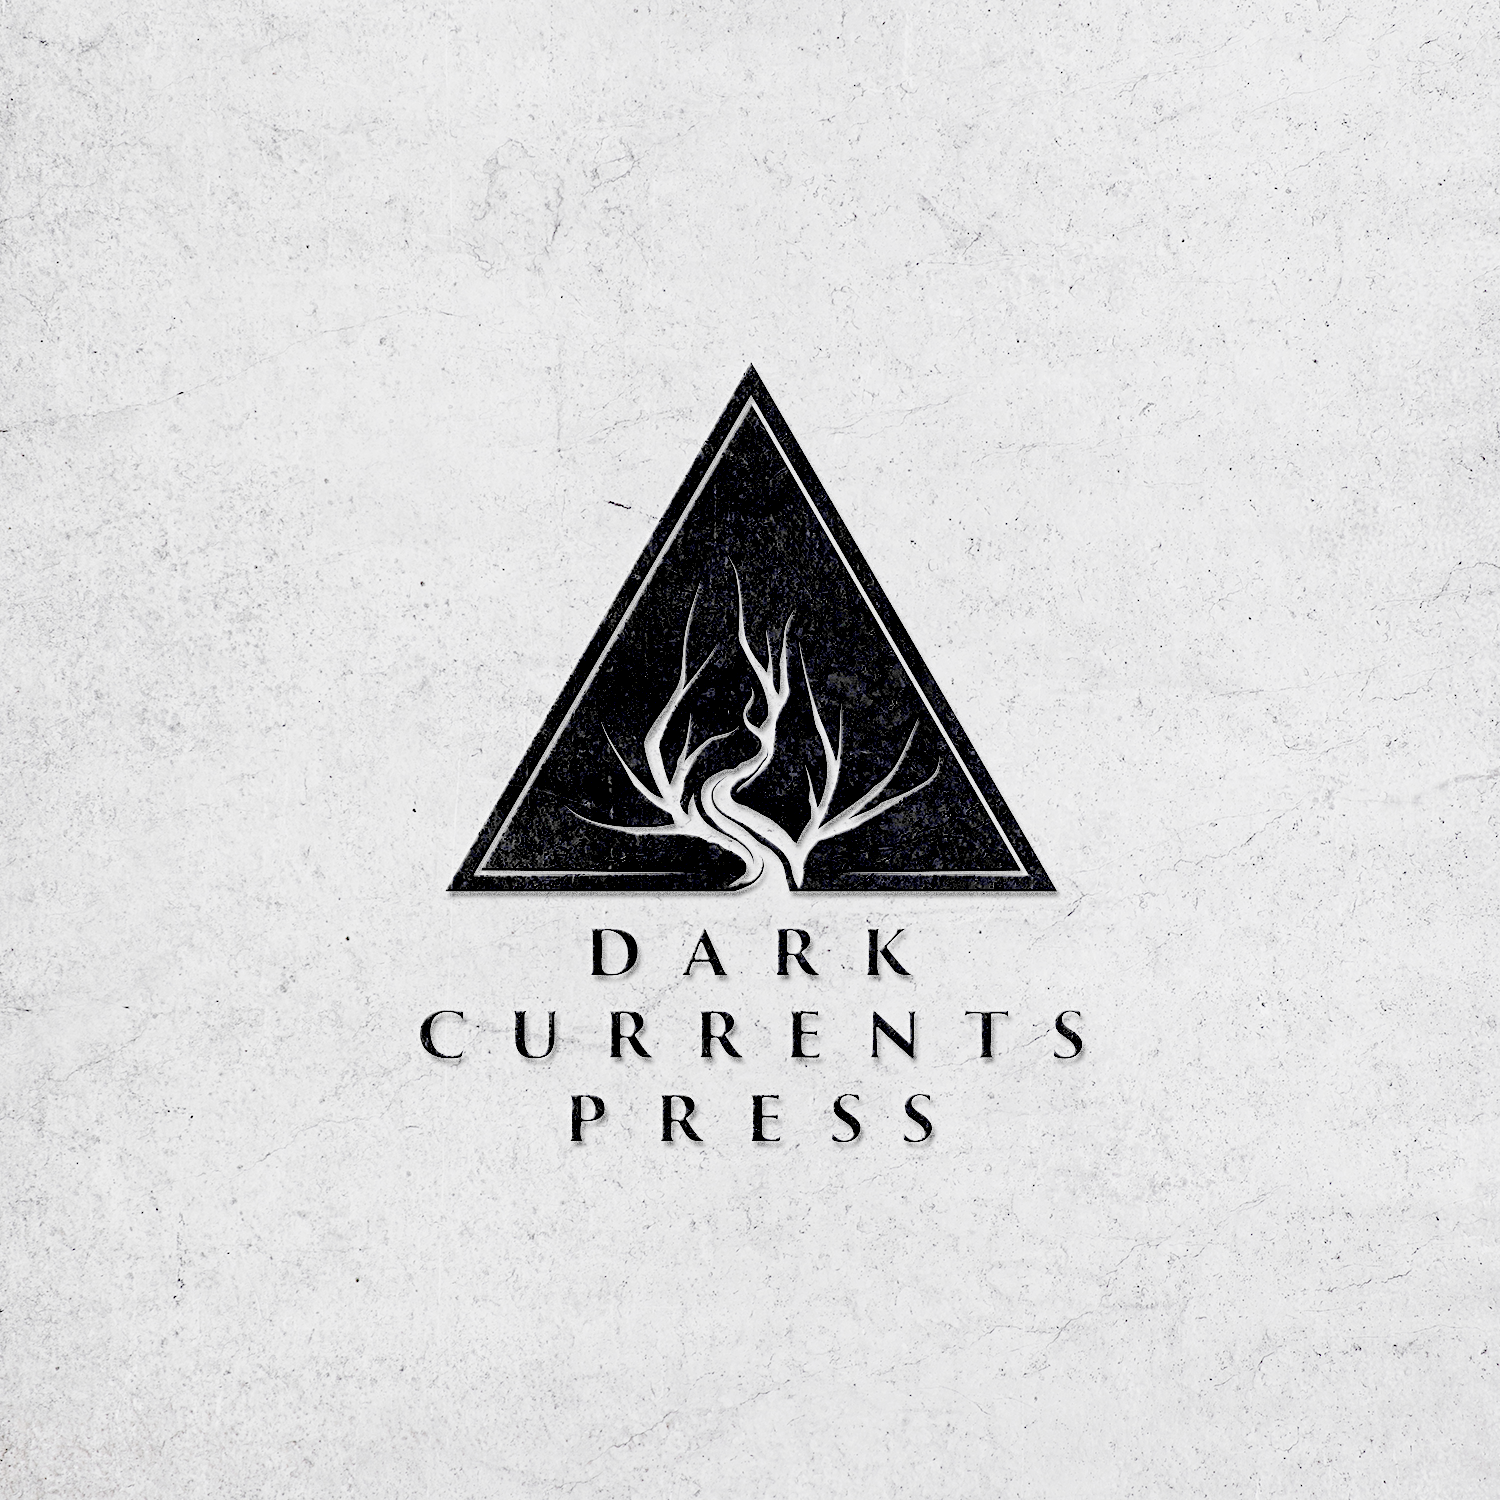 Create a Southern Gothic logo for an independent Southern book publisher